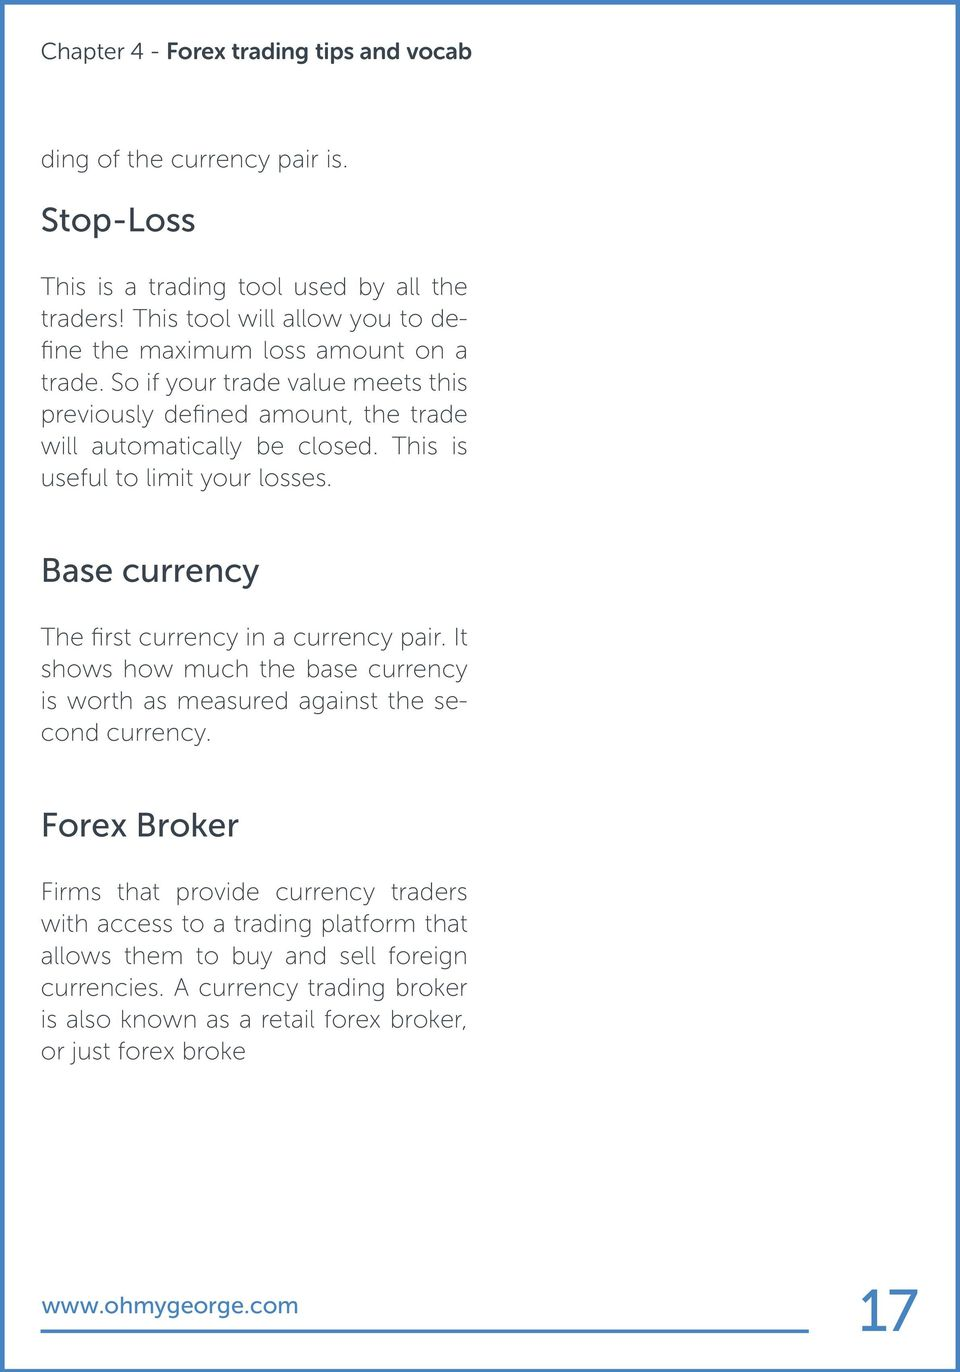 This is useful to limit your losses. Base currency The first currency in a currency pair. It shows how much the base currency is worth as measured against the second currency.